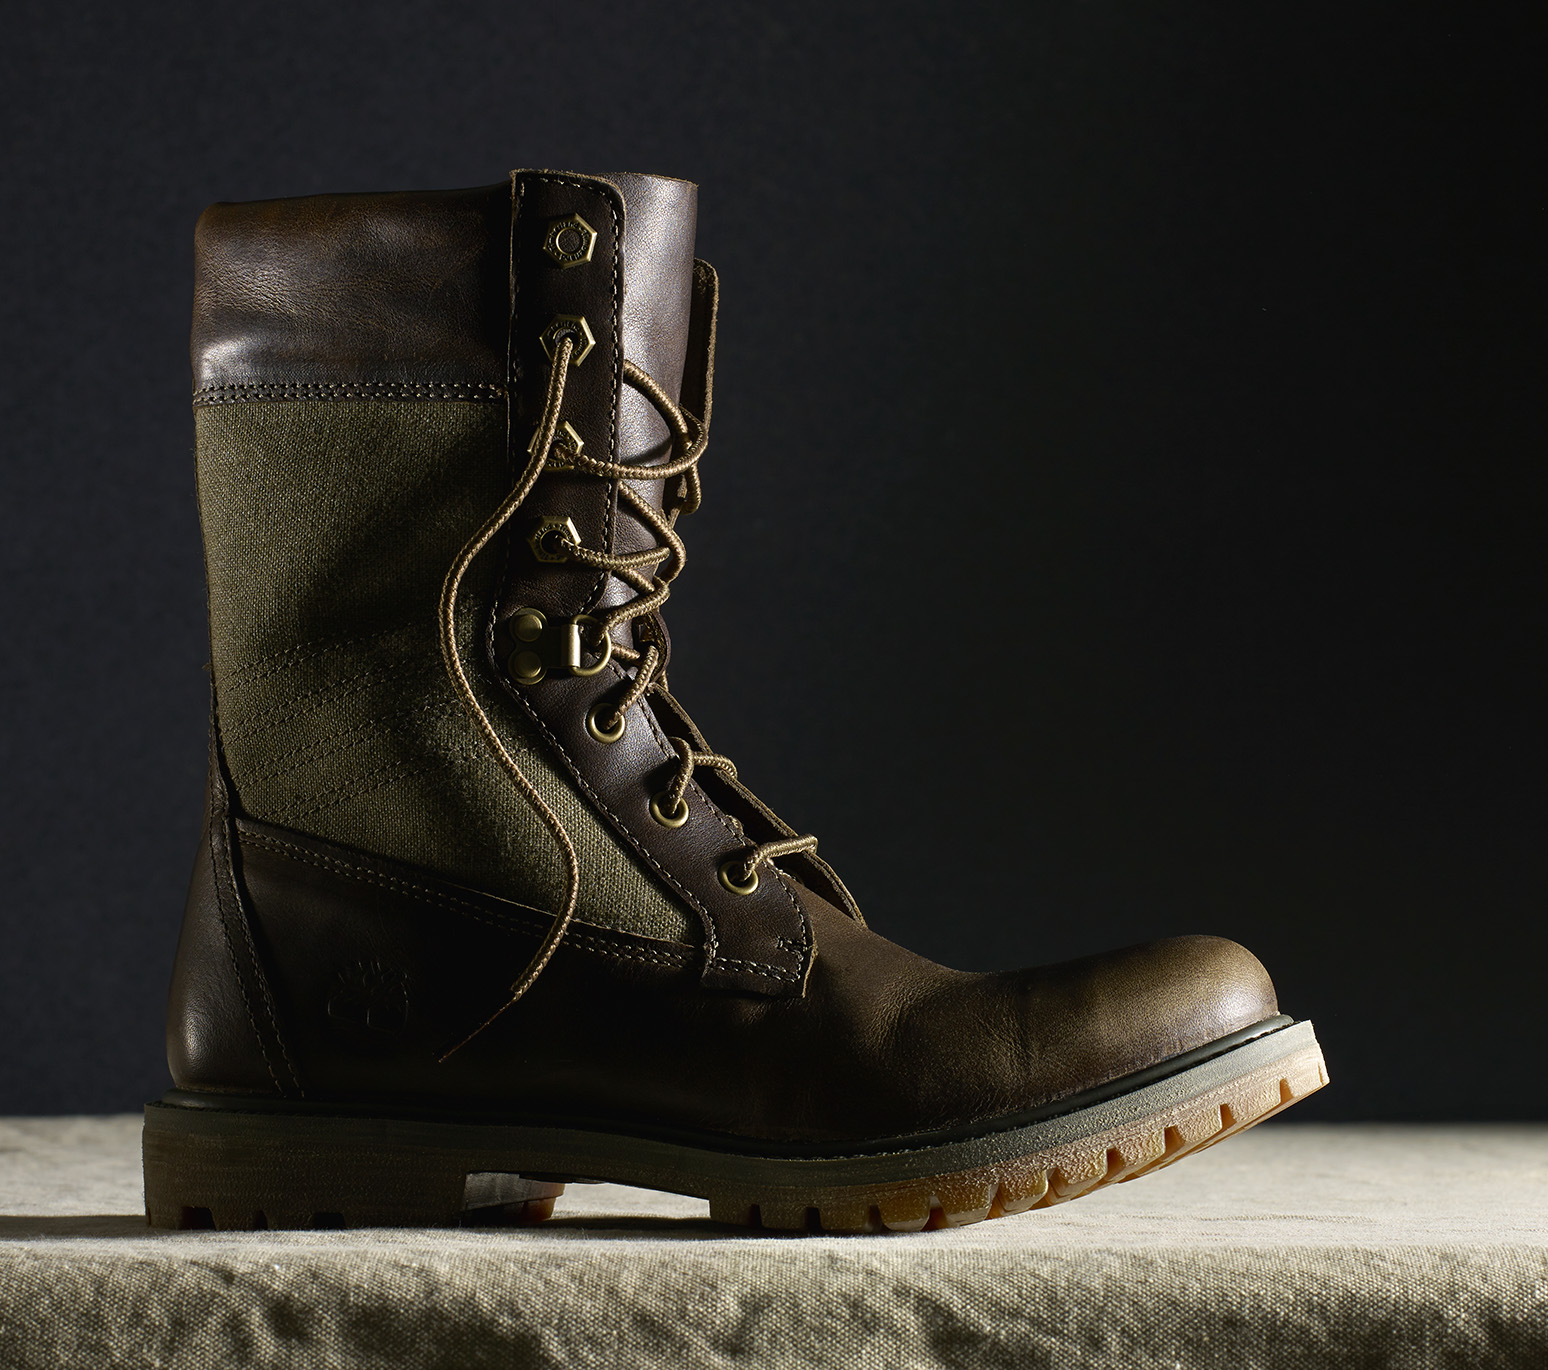 Timberland canvas and leather boot